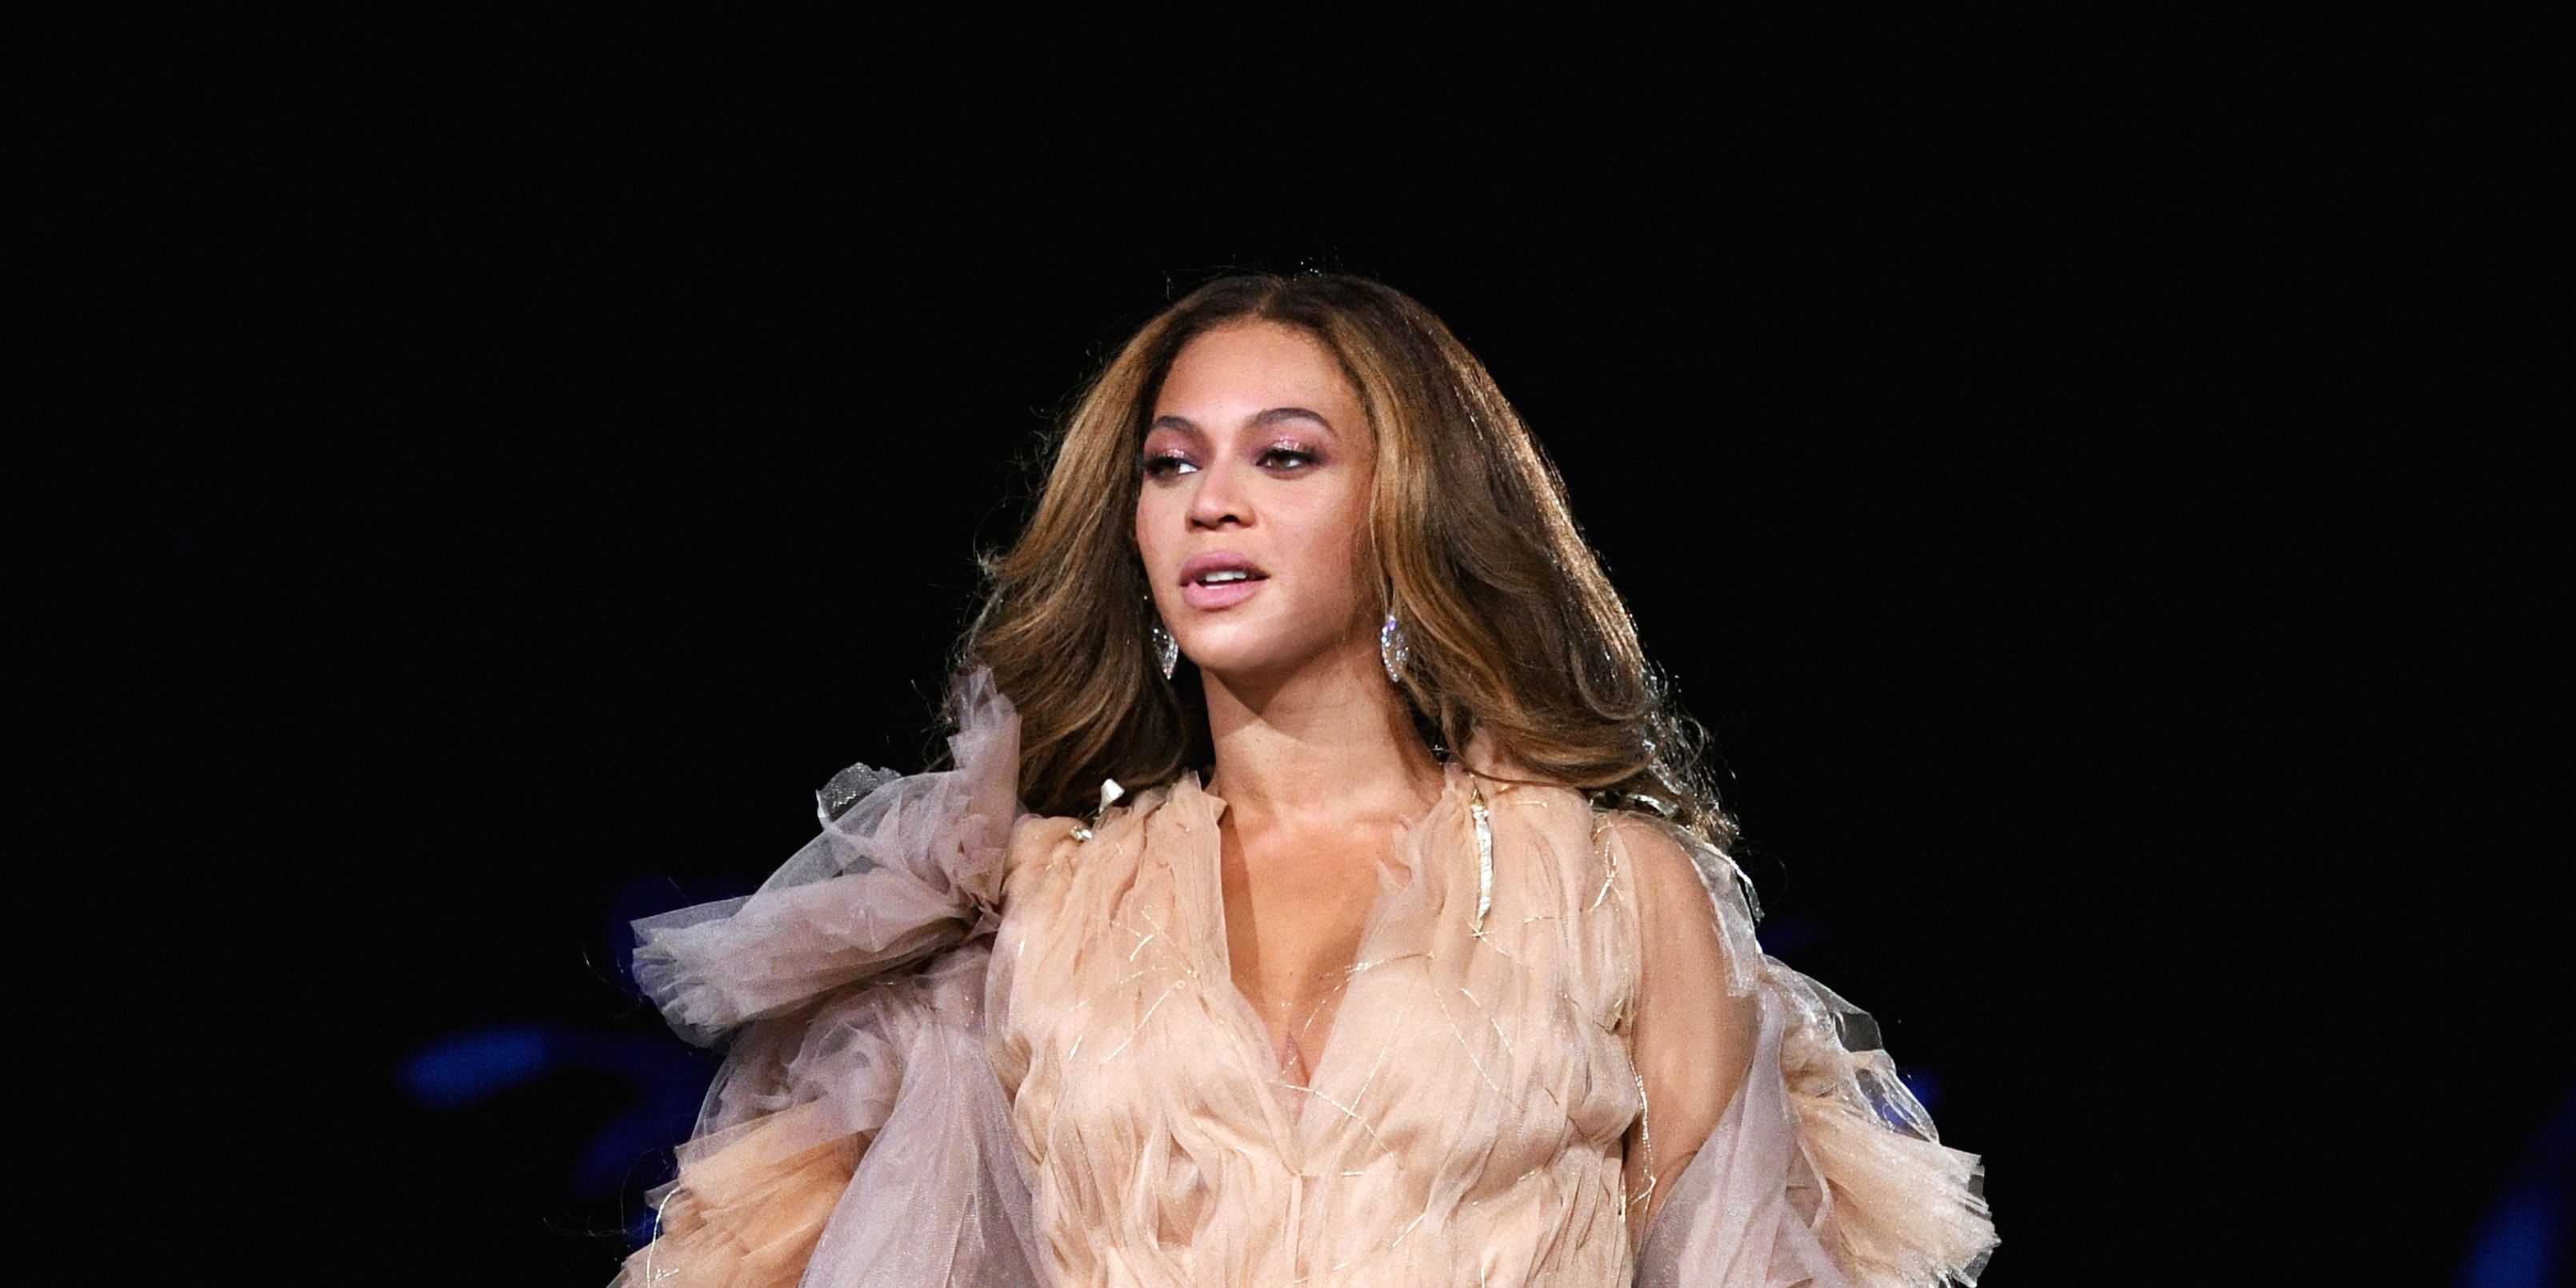 Beyoncé Bought Out Ivy Park After Philip Green's Sexual Harassment Accusations